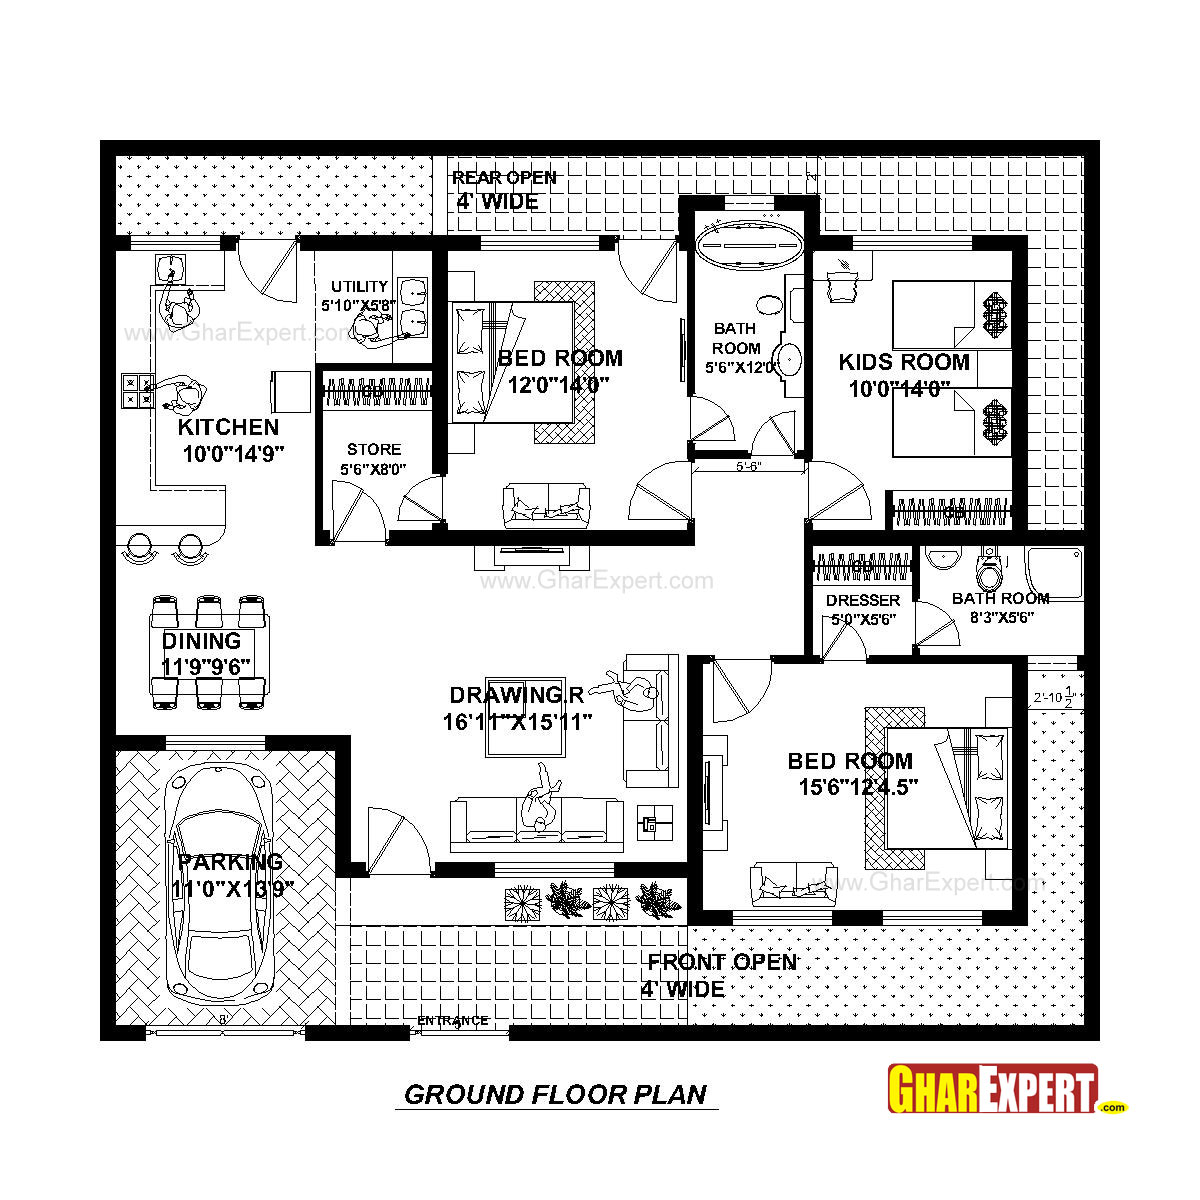 50*50 House Plan For 50 Feet By 45 Feet Plot (plot Size 250 Square Yards) - Gharexpert.com